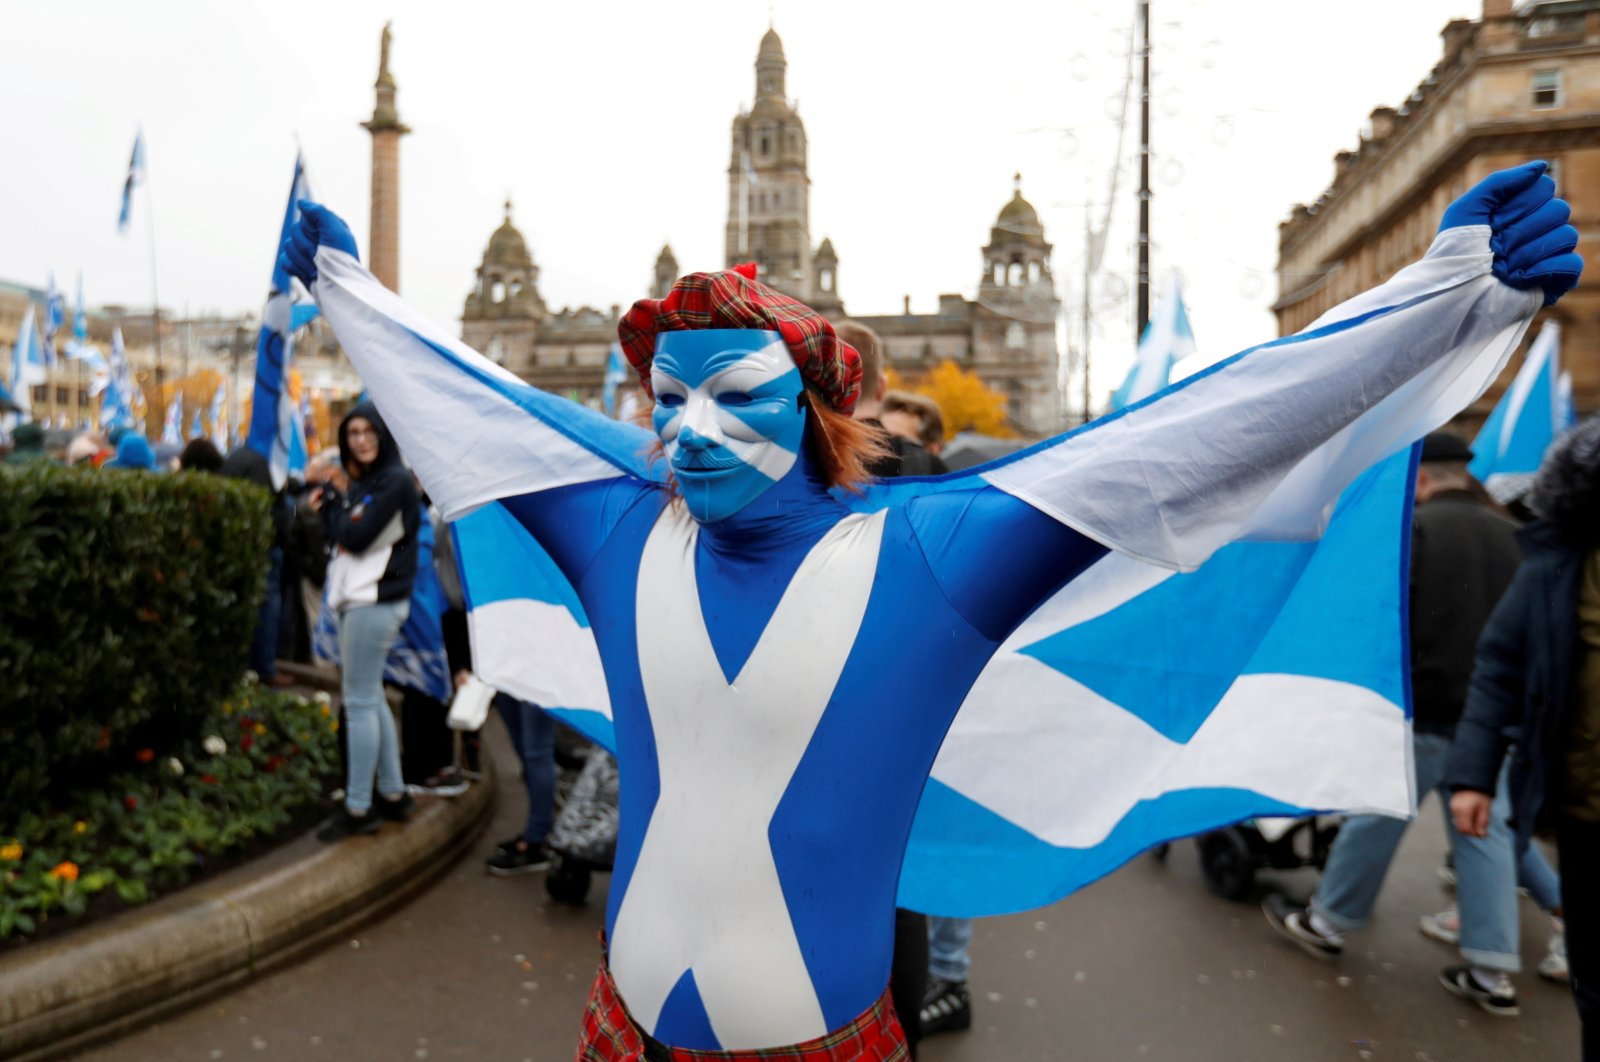 A demonstrator holds a flag during a pro-Scottish Independence rally in Glasgow, Scotland, Nov. 2, 2019. (Reuters Photo)